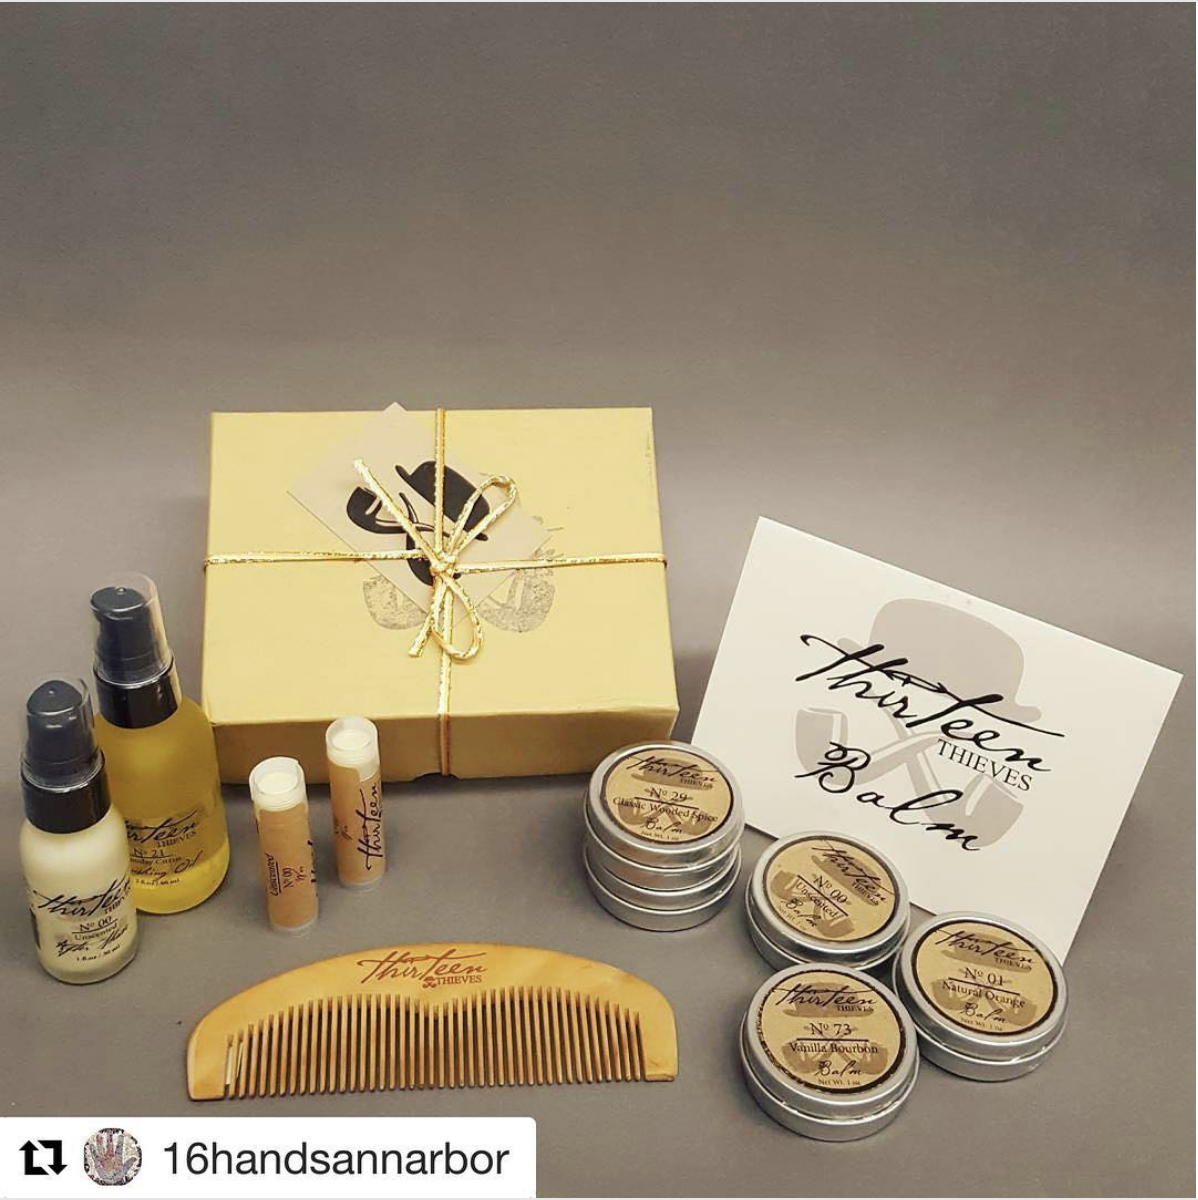 We have brand new men's personal care products and gift sets! These organic handmade oils and balms are perfect for the bearded gentleman in your life. Just in time for Father's Day! Stop by and see us in our vibrant location in historic Kerrytown.